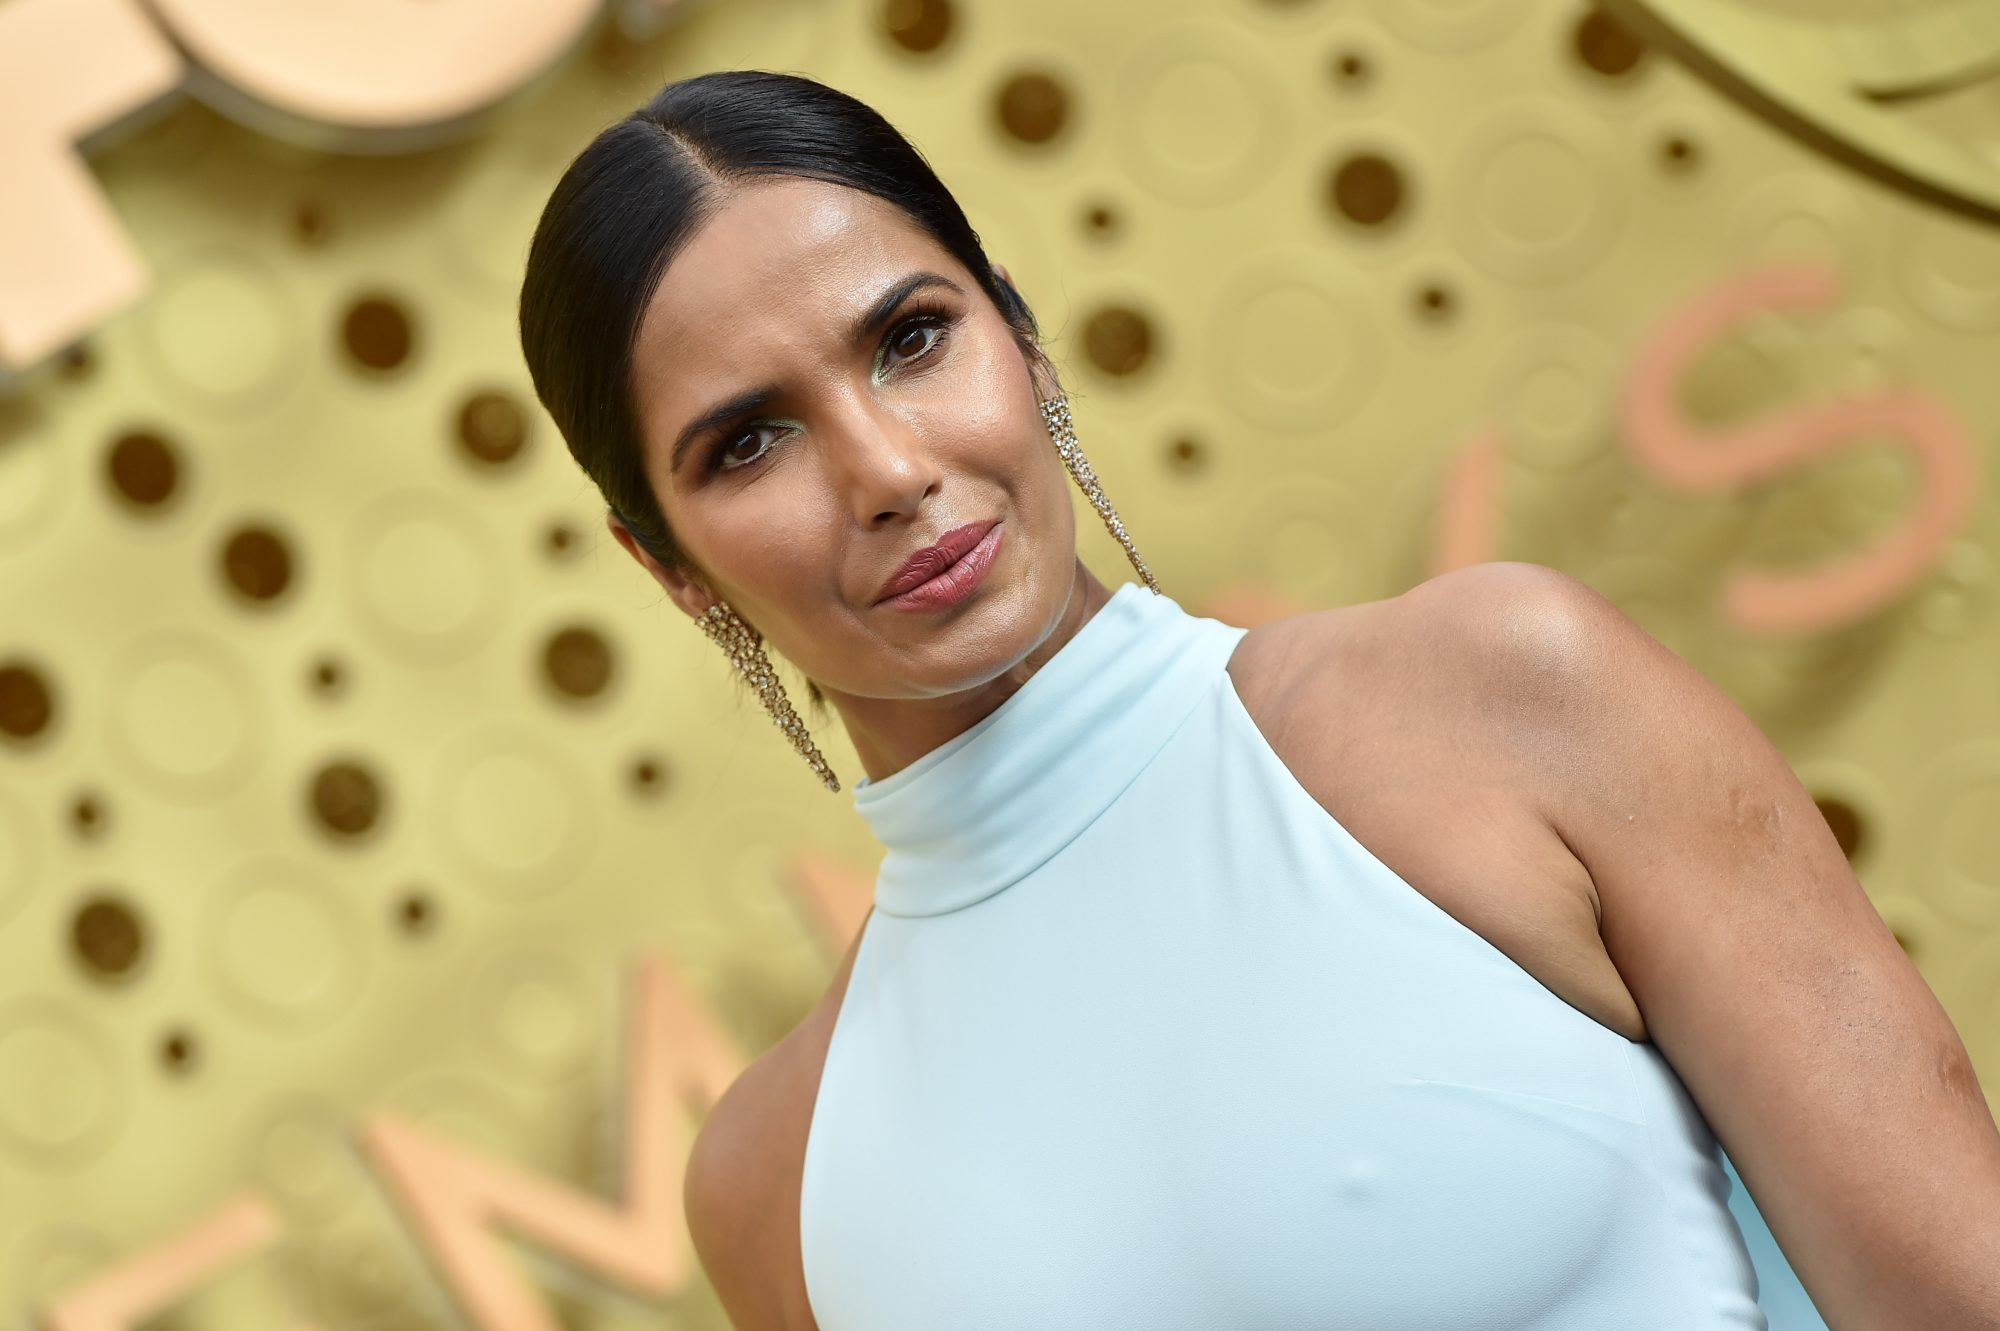 padma lakshmi endometriosis diagnosis